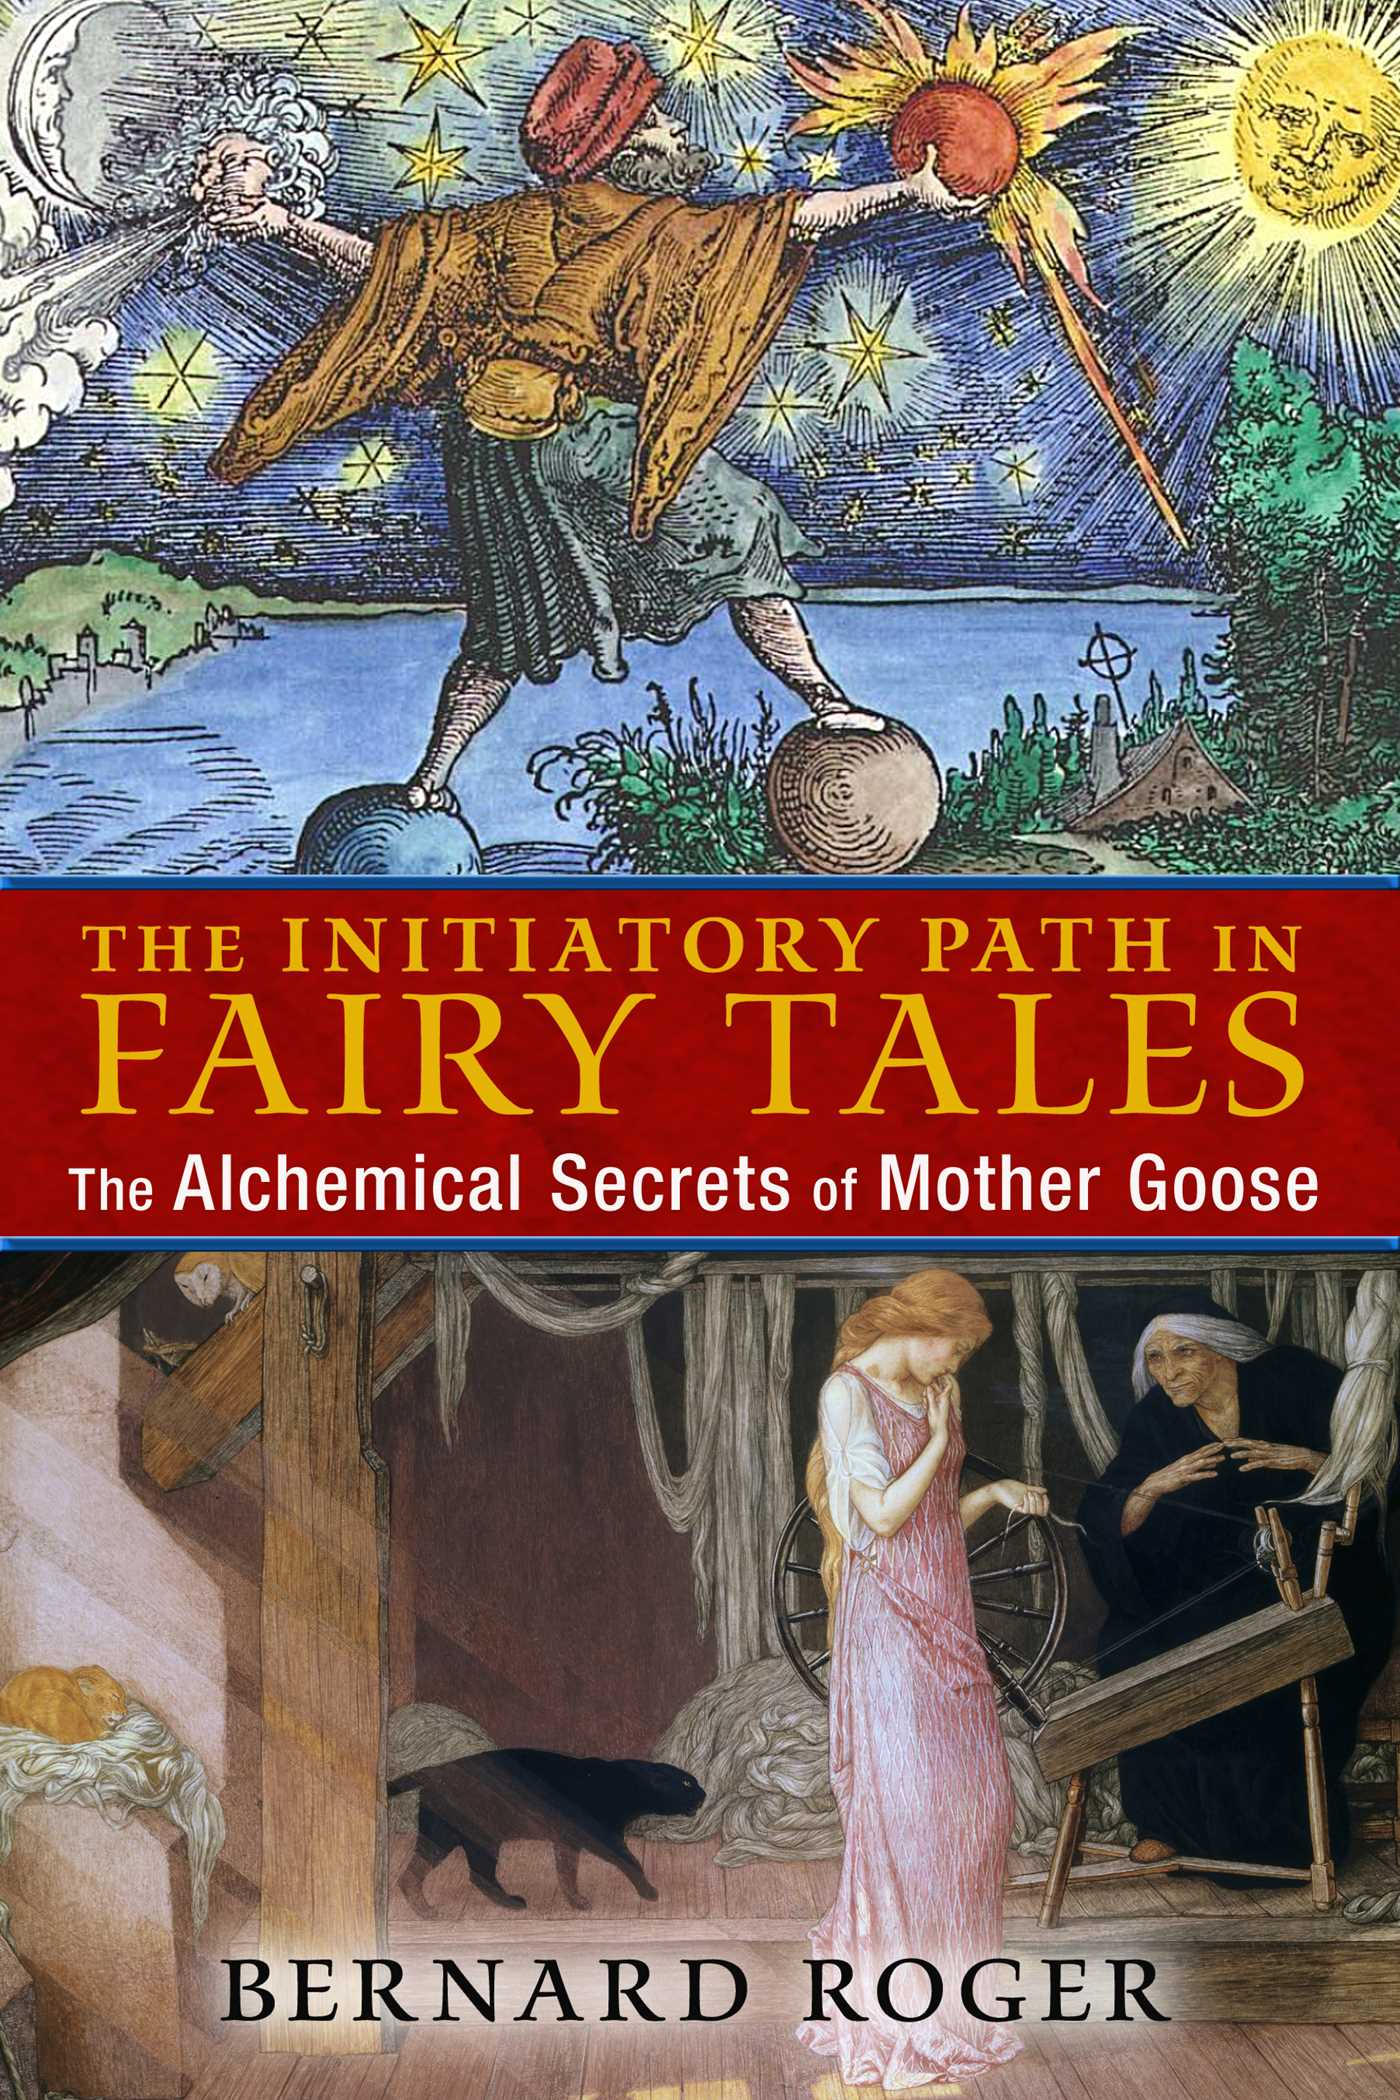 The initiatory path in fairy tales 9781620554043 hr